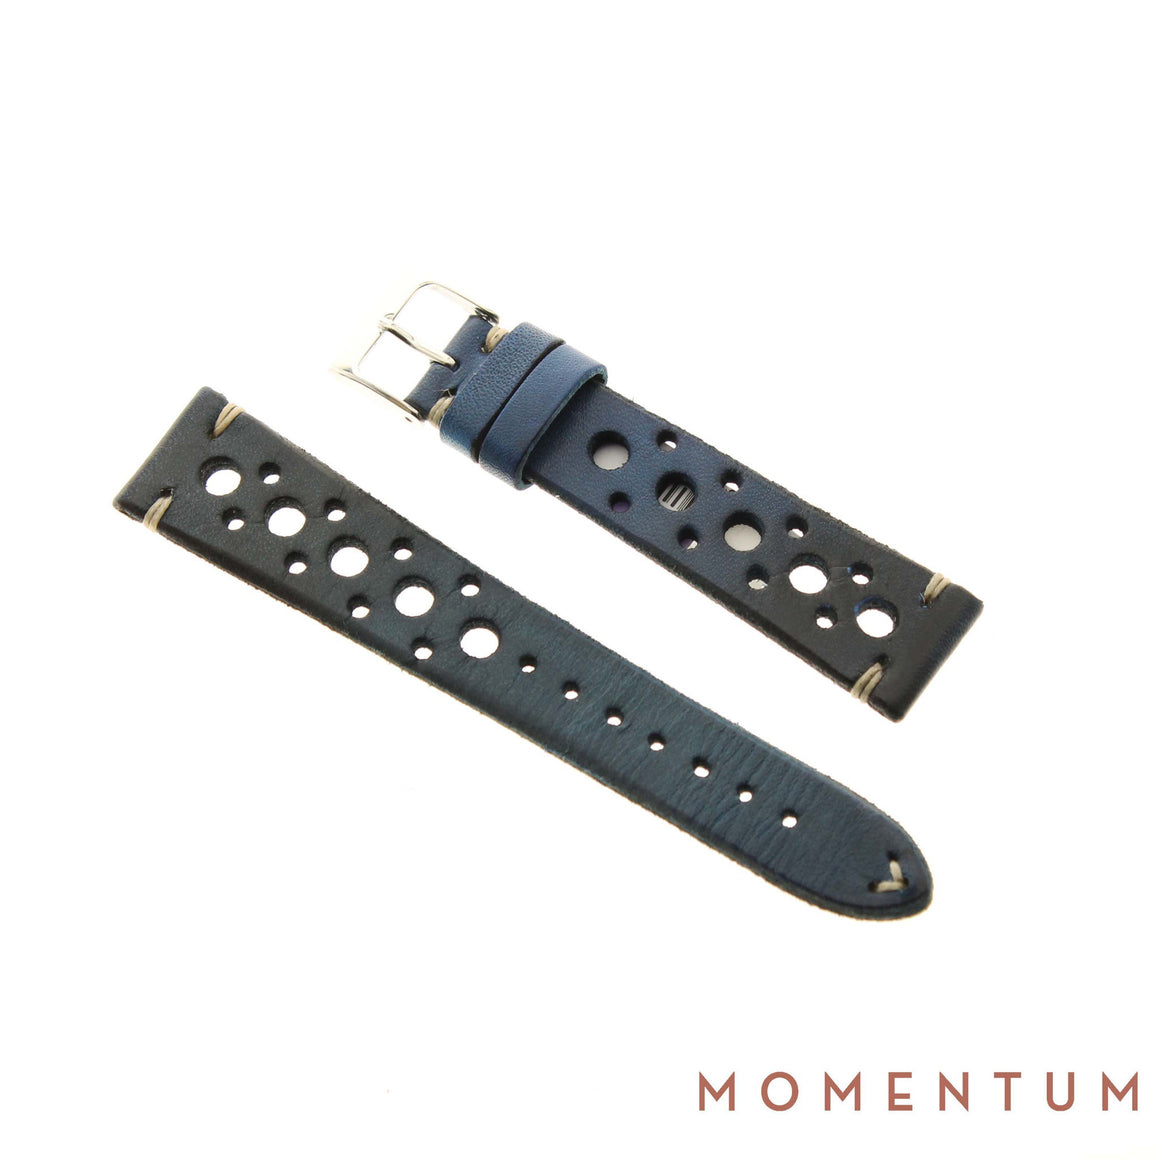 Vintage Strap - Blue Berluti style with holes - Calf Leather - Momentum Dubai